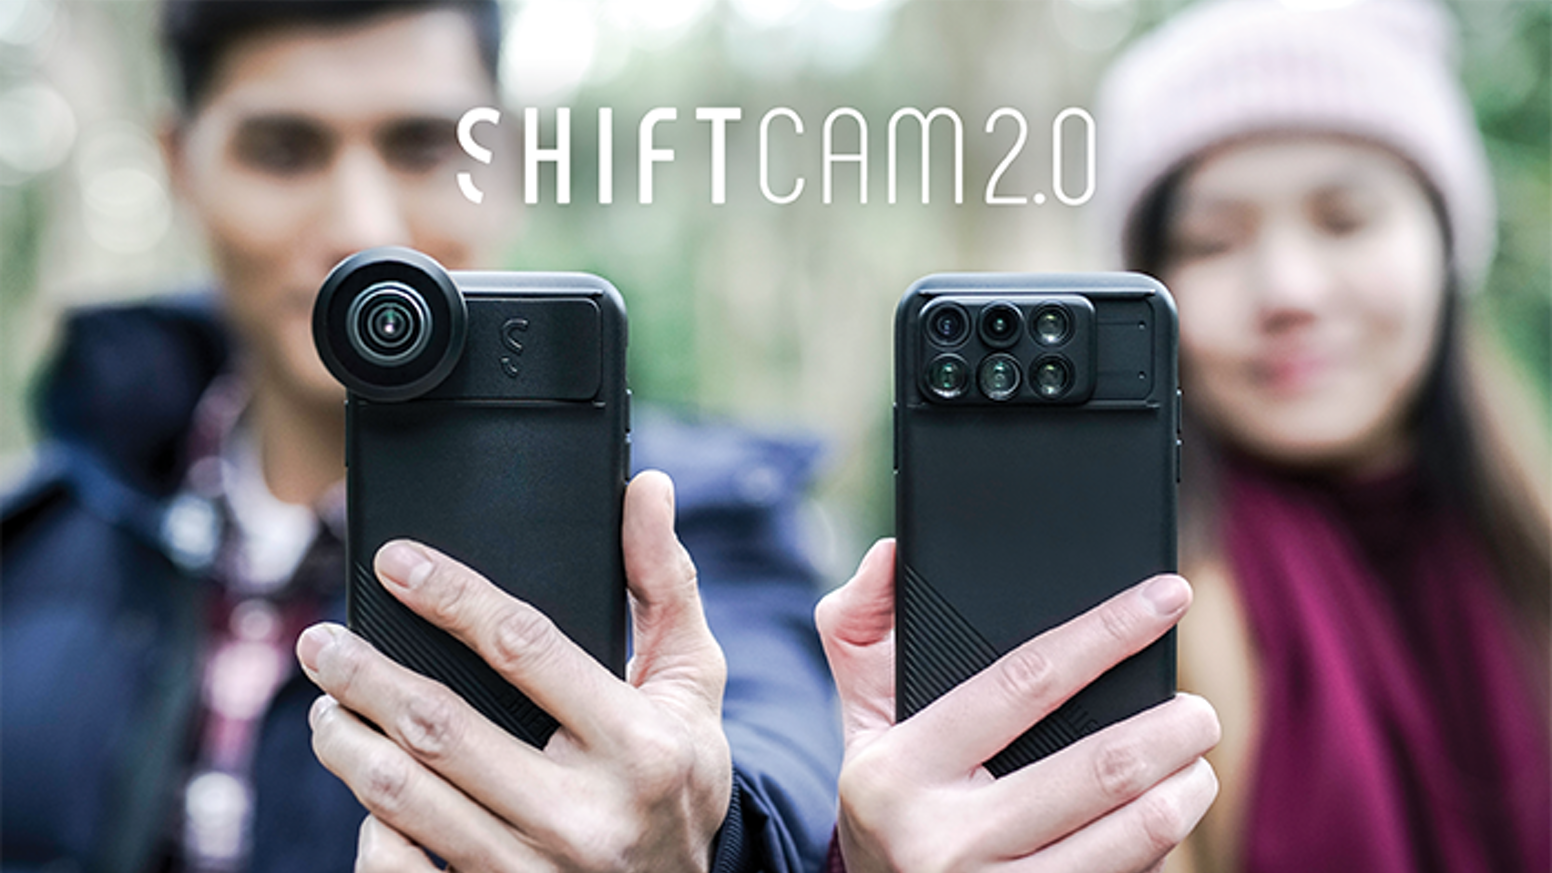 A Comprehensive Set of 12 Camera-Enhancing Lenses in 1 Convenient, Portable, Phone case for Photographers.  Just Shift. Point. & Shoot.